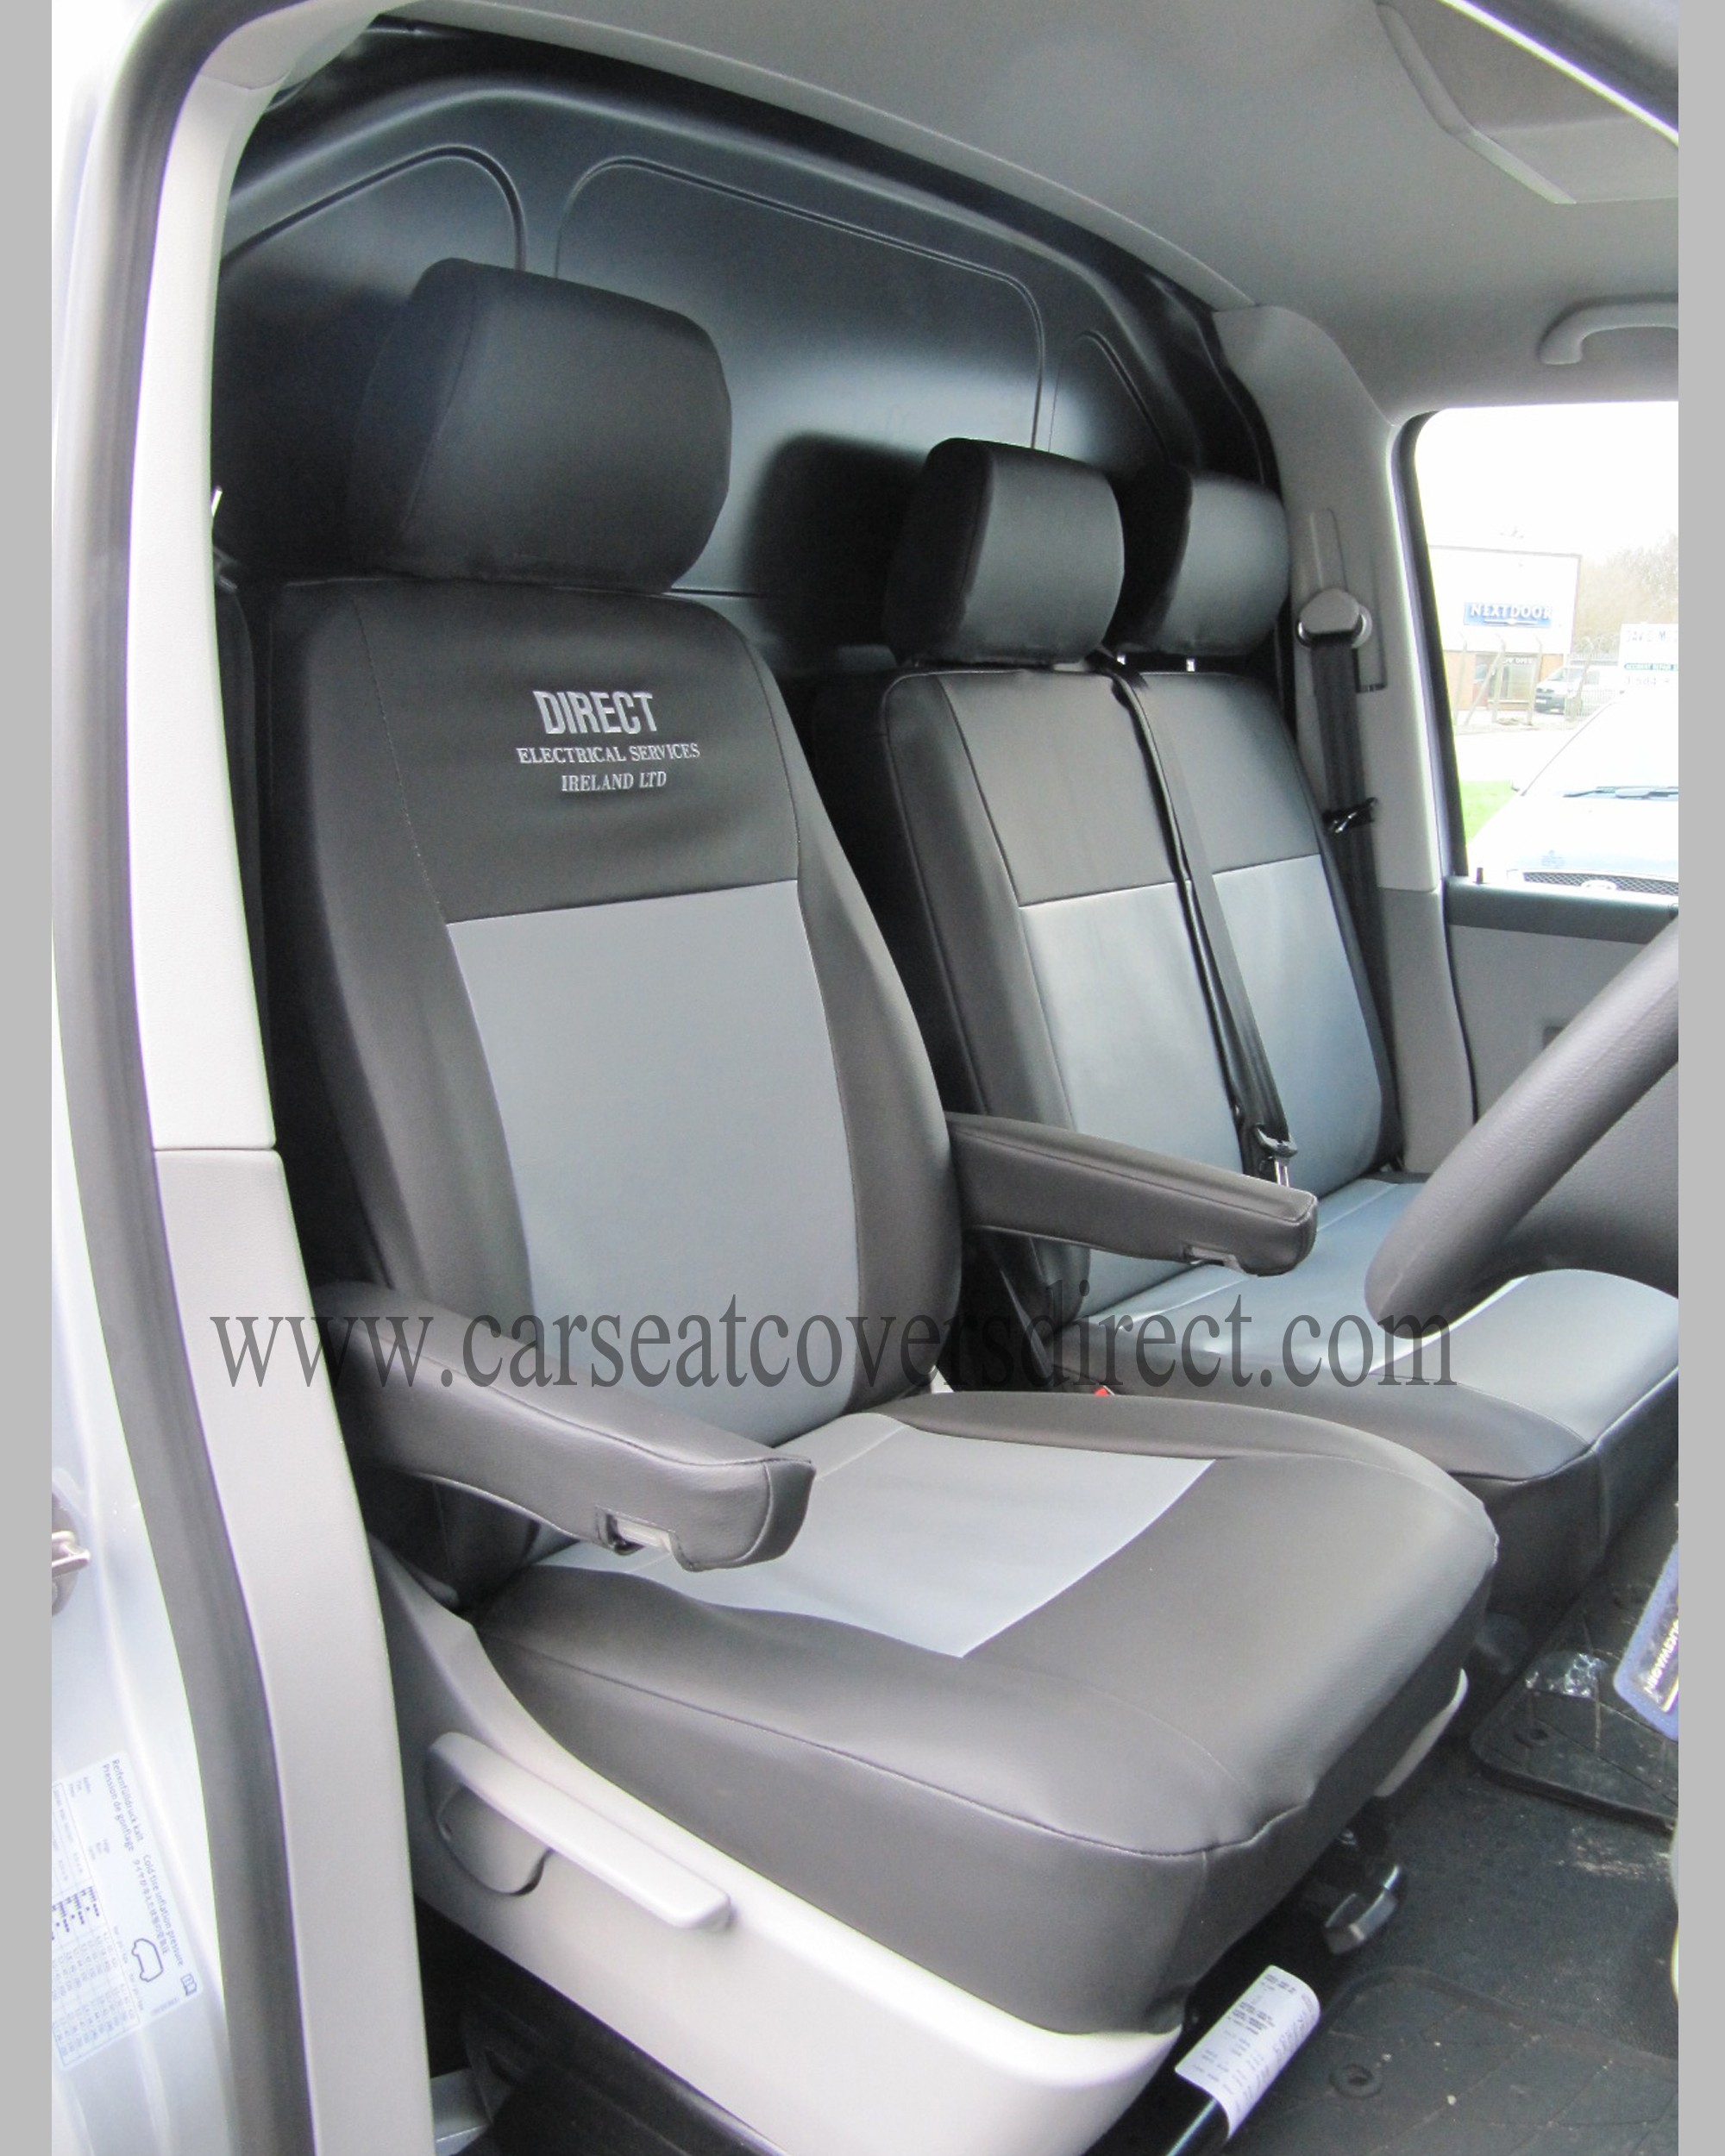 VW Transporter T5 black and grey seat covers